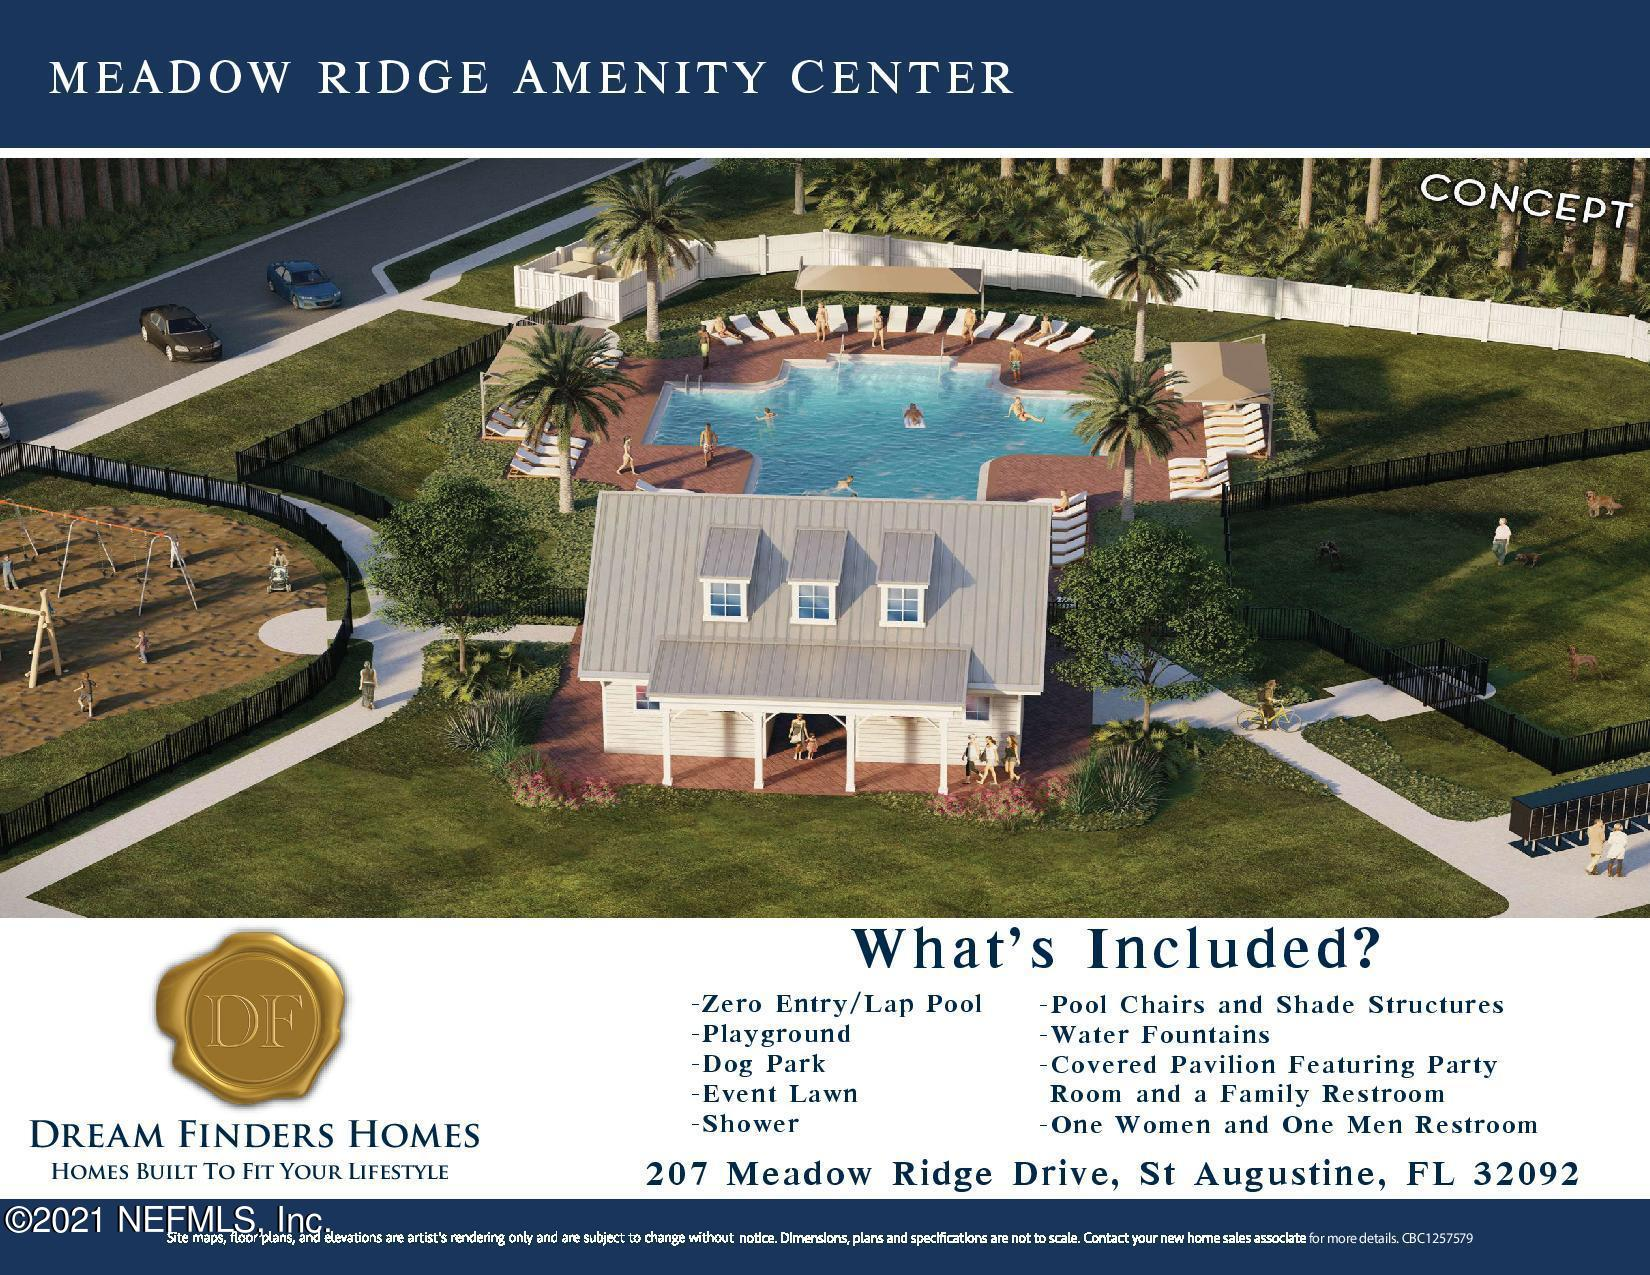 557 MEADOW RIDGE, ST AUGUSTINE, FLORIDA 32092, 4 Bedrooms Bedrooms, ,3 BathroomsBathrooms,Residential,For sale,MEADOW RIDGE,1086638